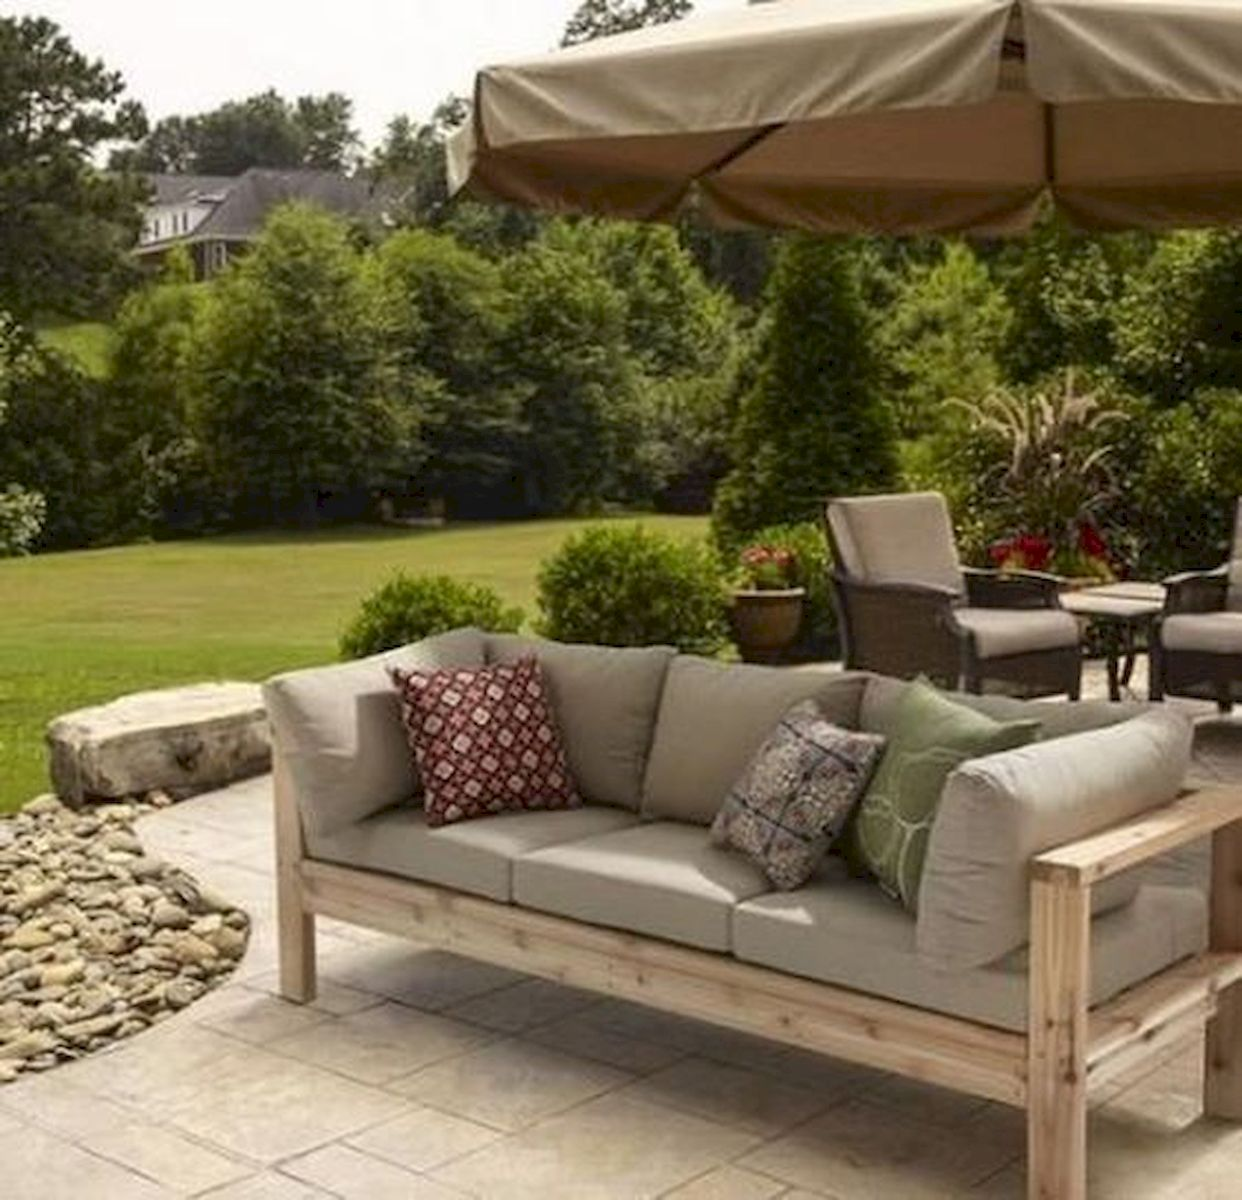 40 Fantastic Outdoor Bench Ideas For